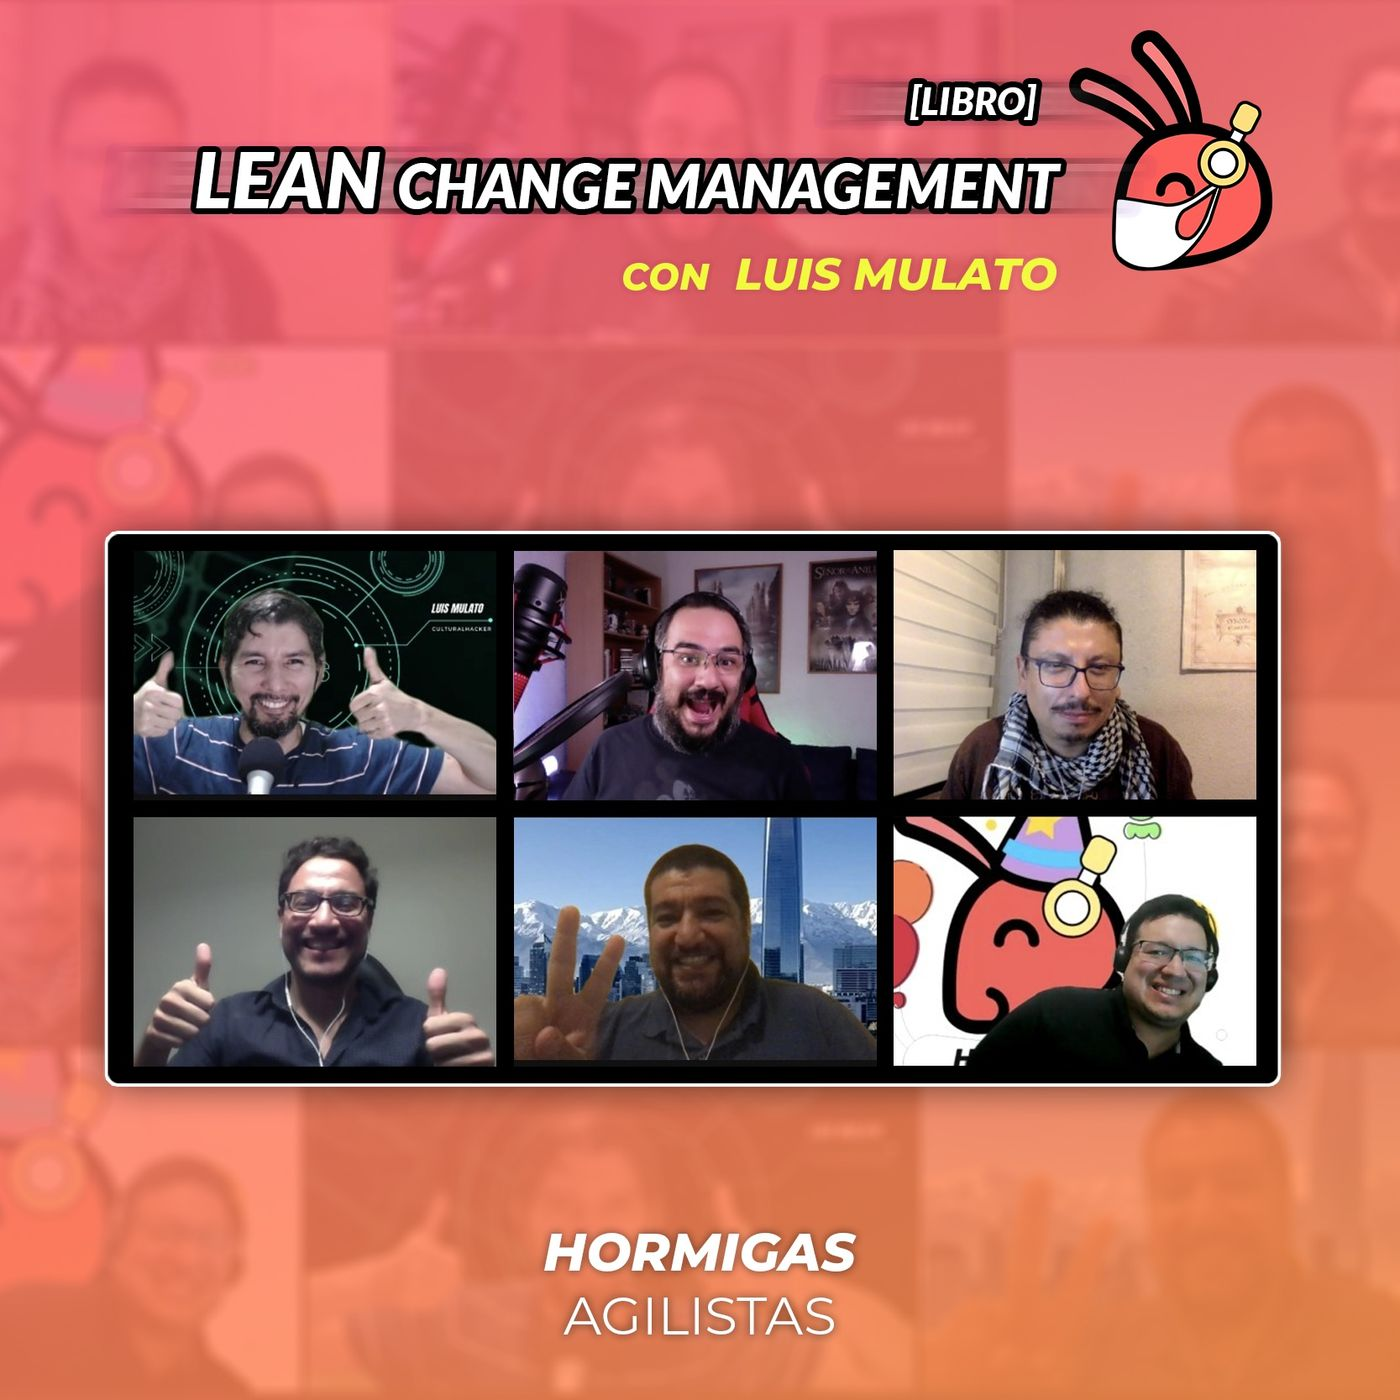 EP51 - [Libro] - Lean Change Management con Luis Mulato